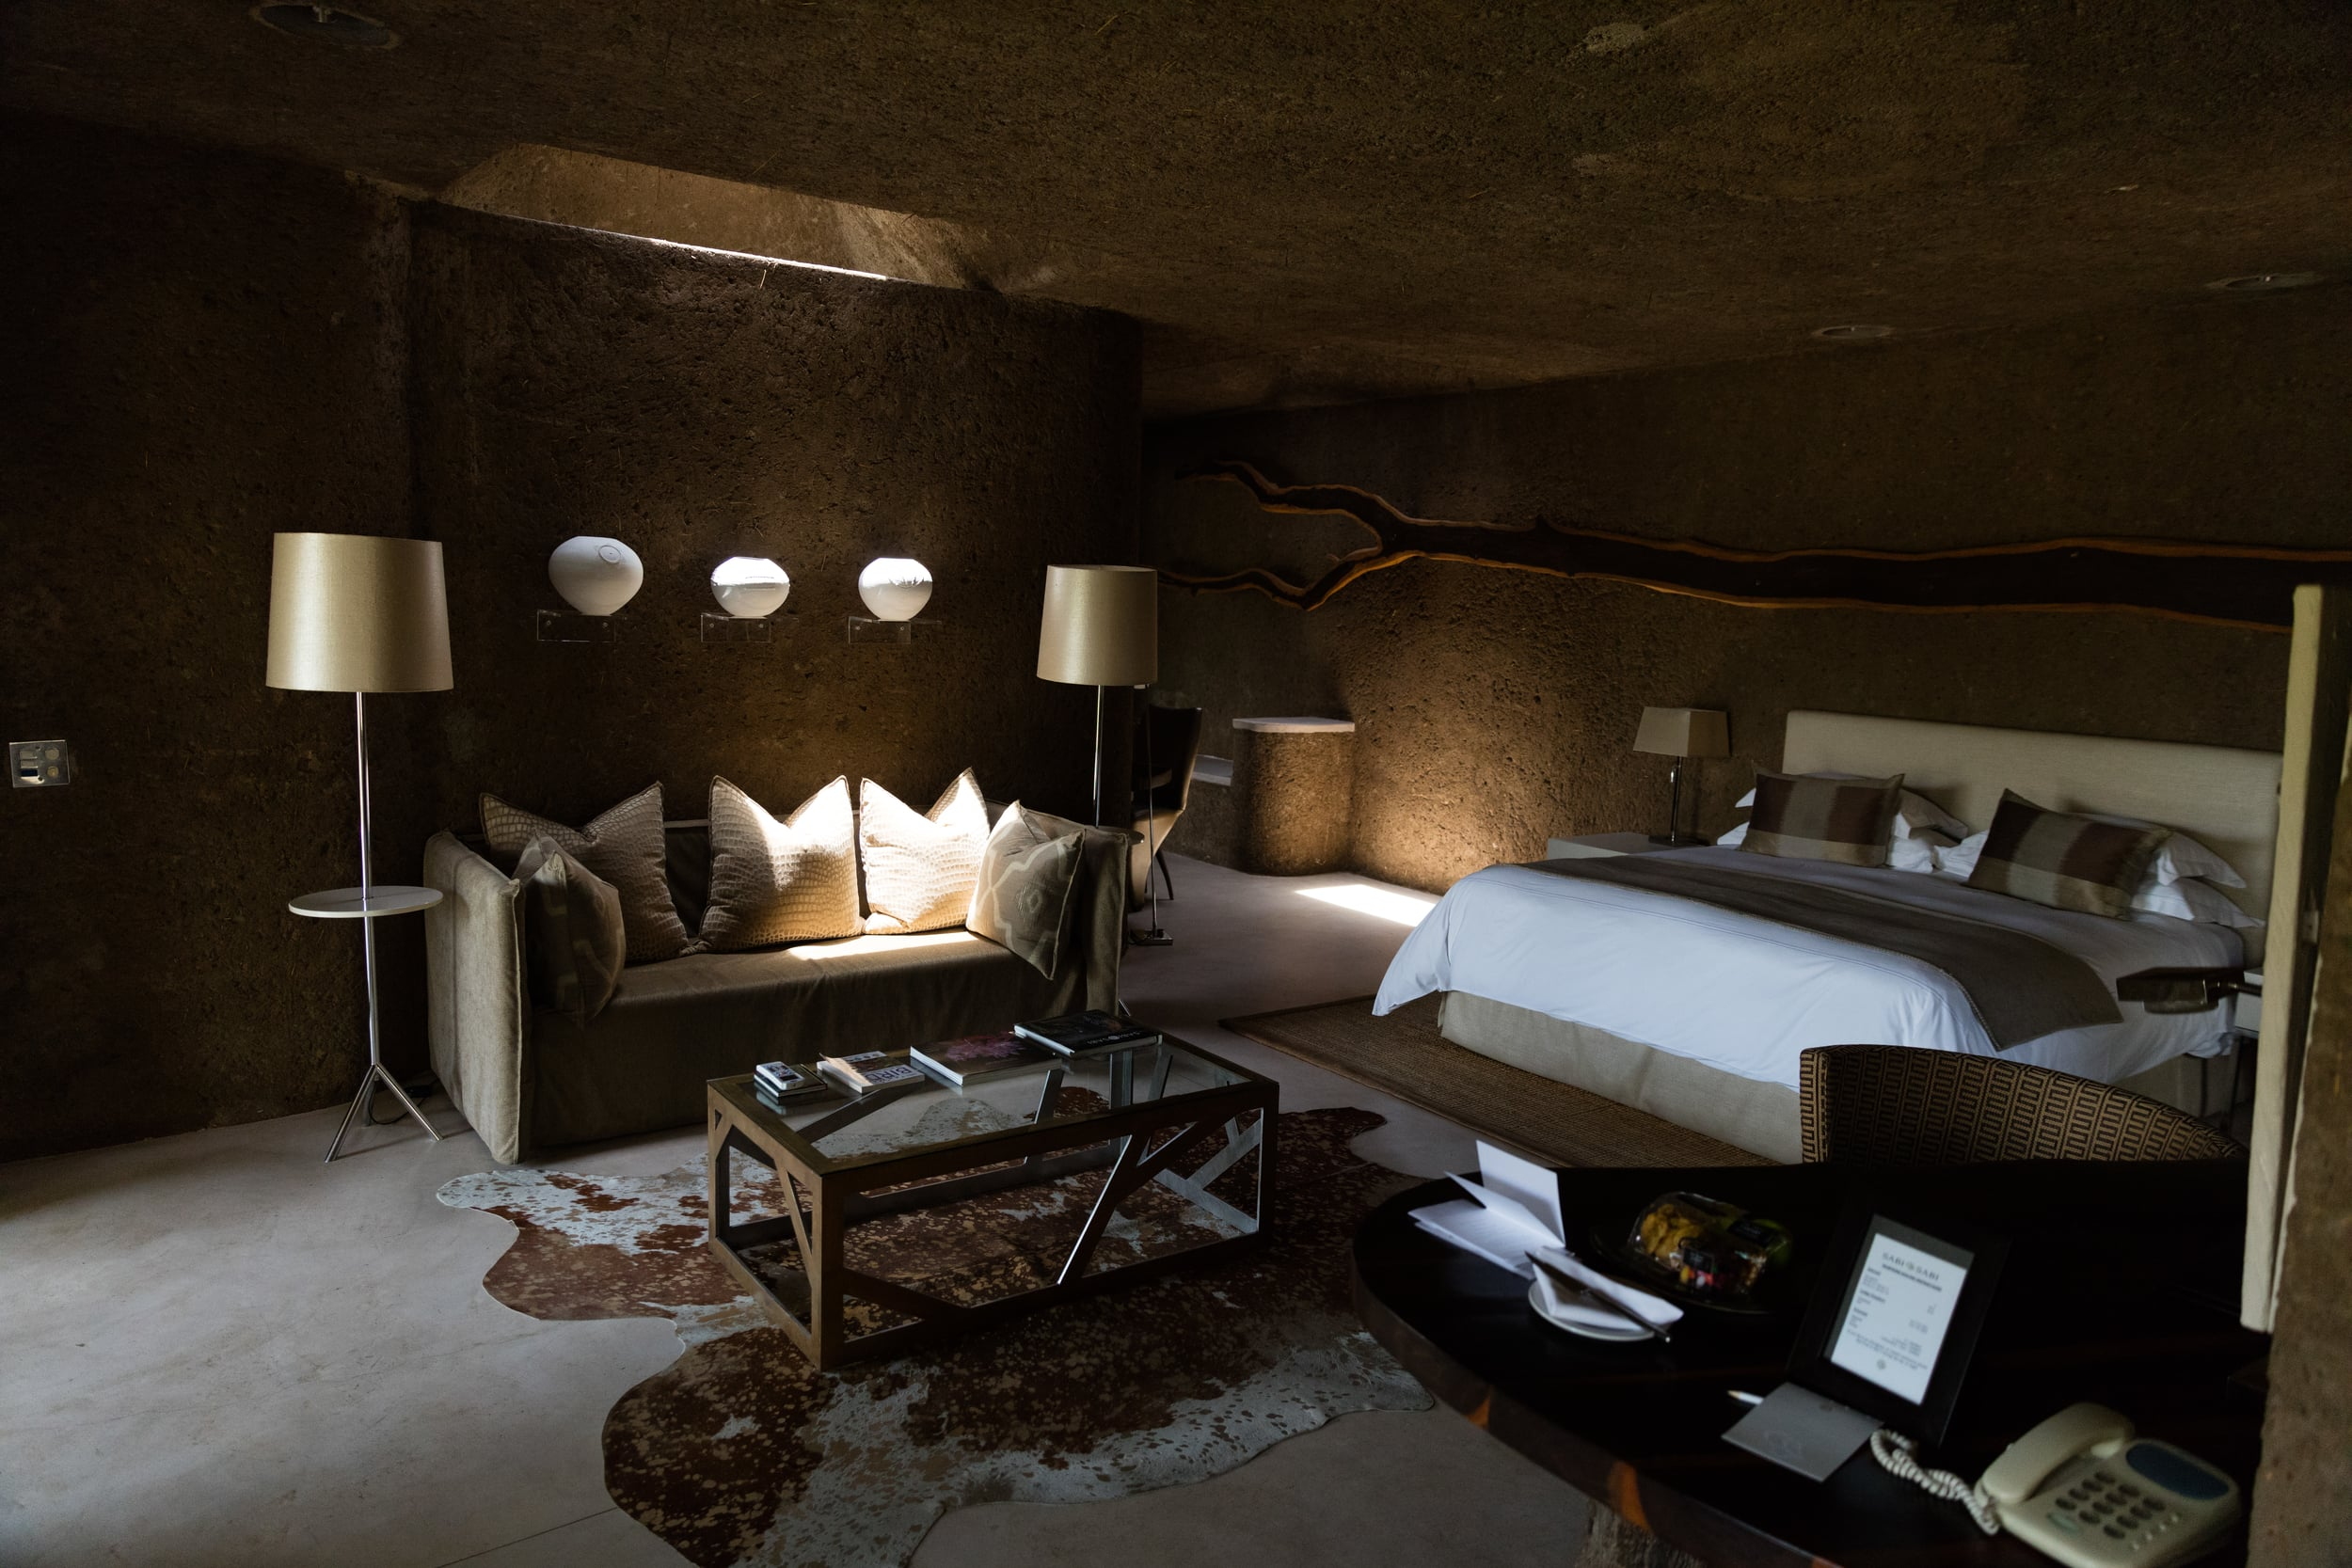 Earth Lodge, Sabi Sabi, Kruger National Park, South Africa